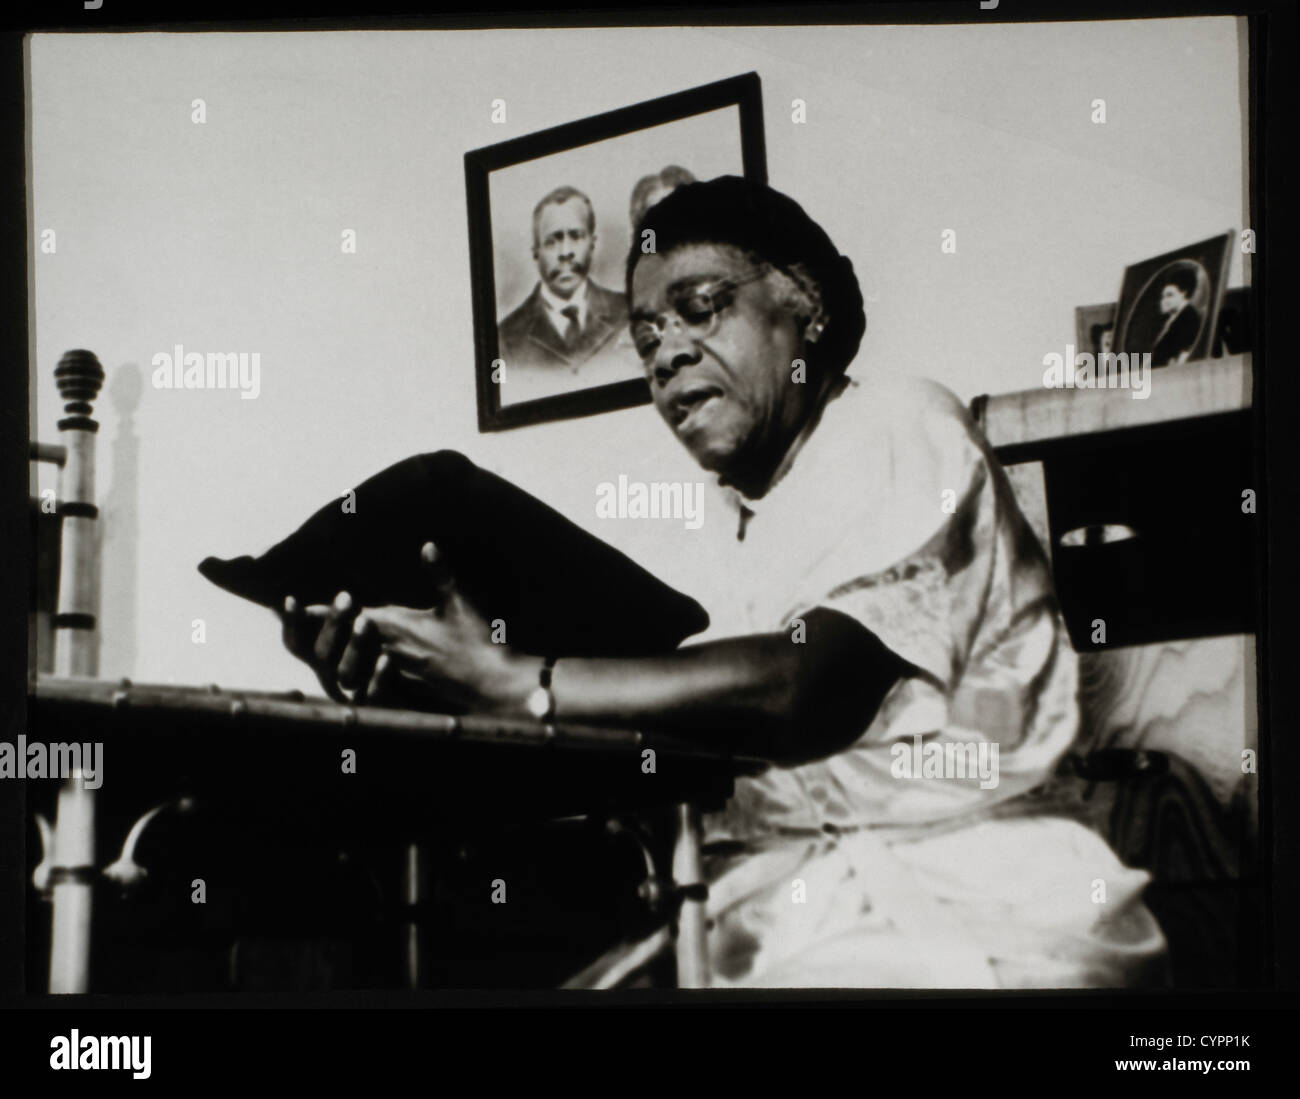 Mary McCloud Bethune, (1875-1955), Educator and Civil Rights Leader - Stock Image